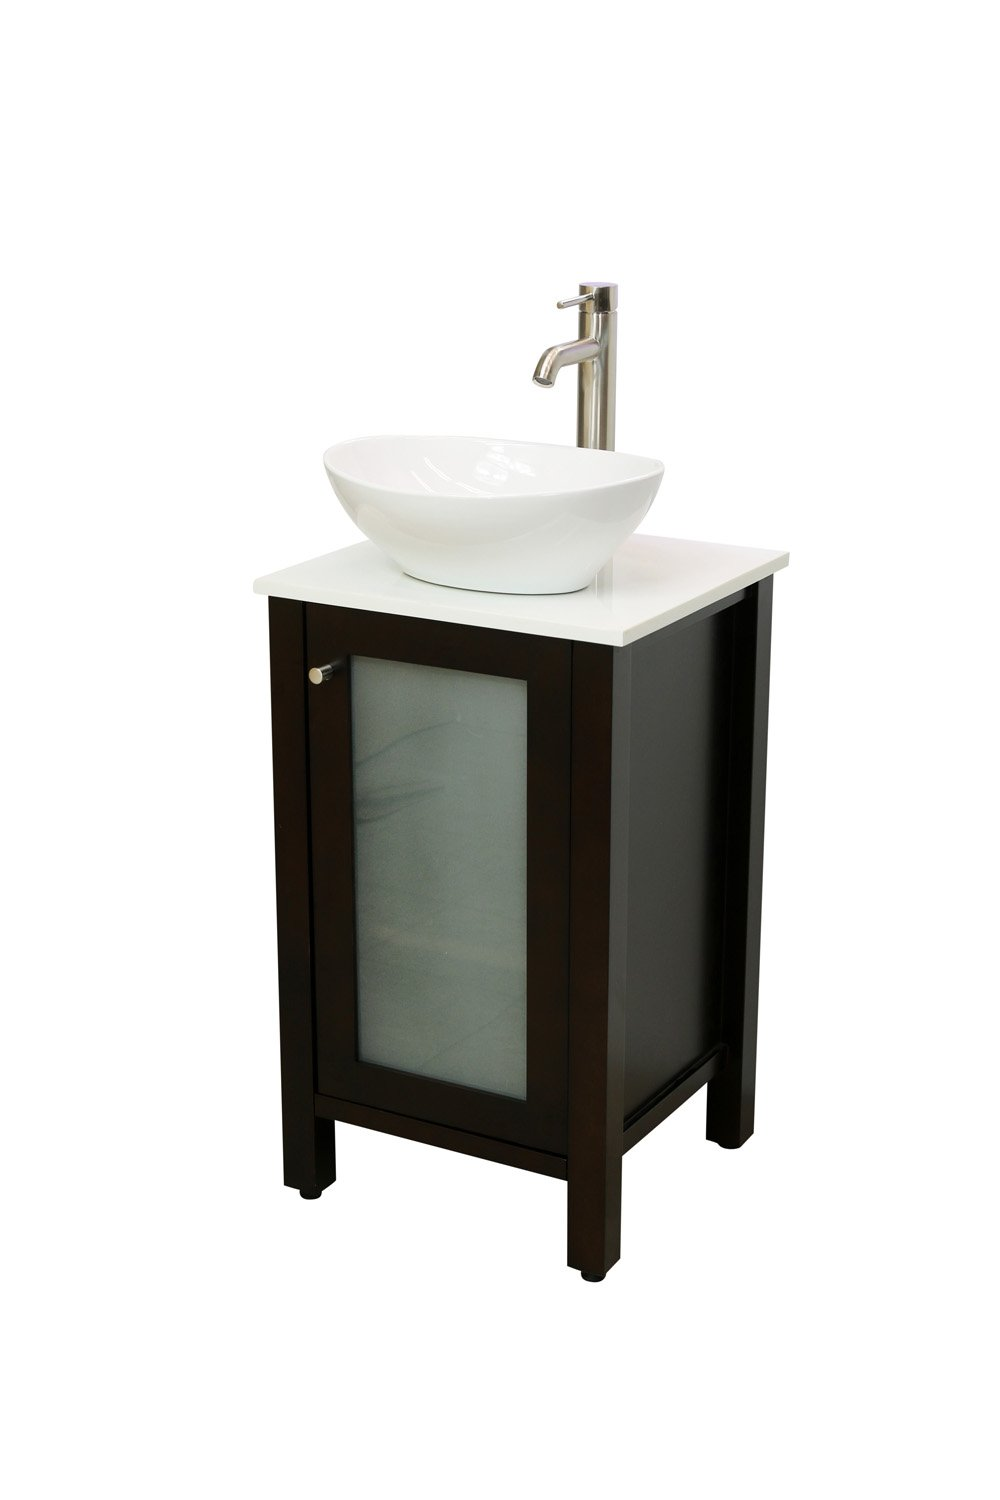 Windbay 19 Solid Wood Bathroom Vanity Set with White Quartz Stone Top, with Choice of Vessel Sink and Faucet